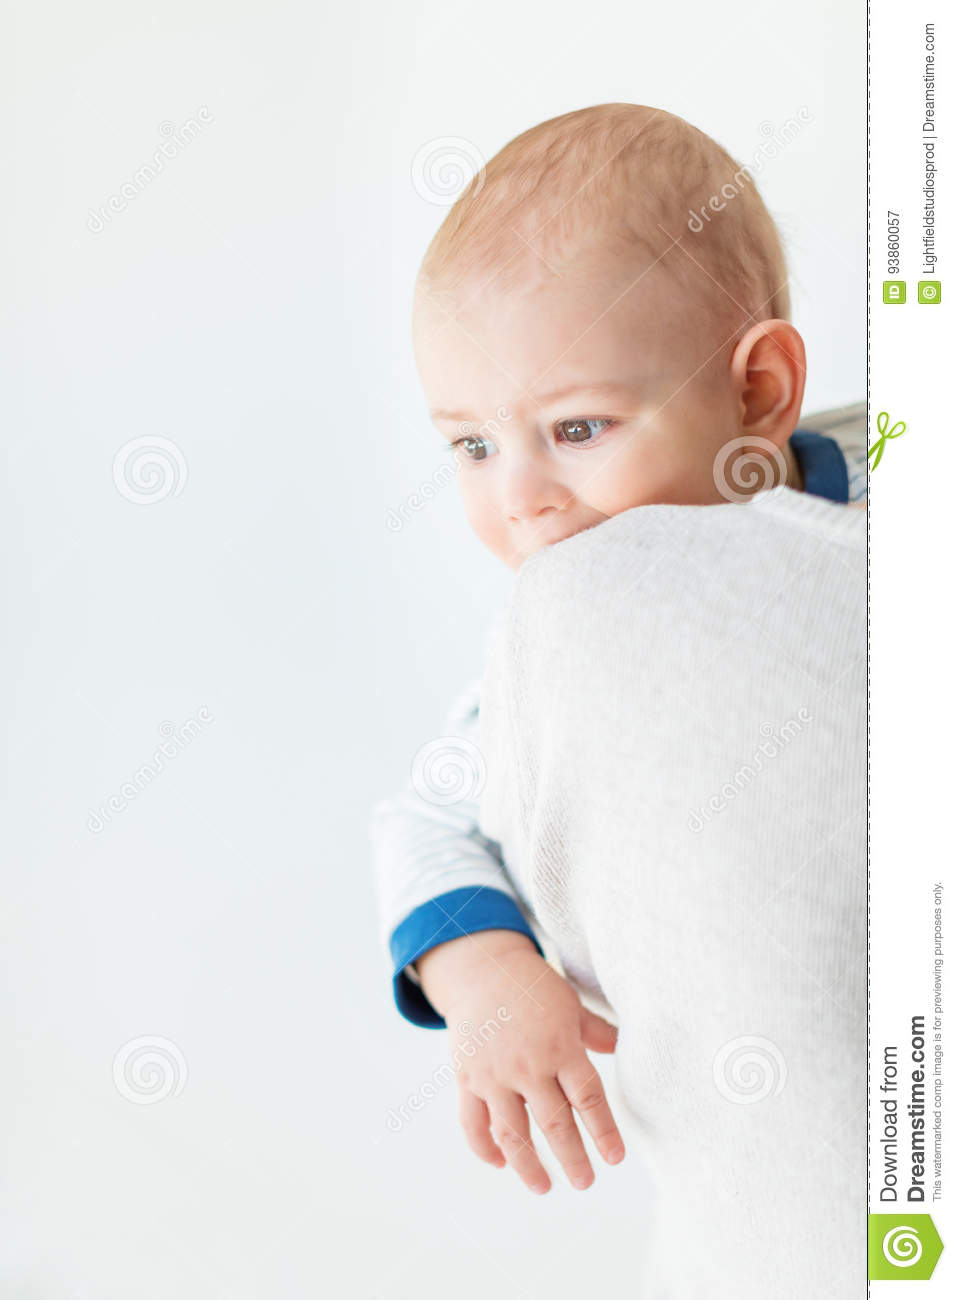 Portrait of adorable baby boy looking away isolated on white